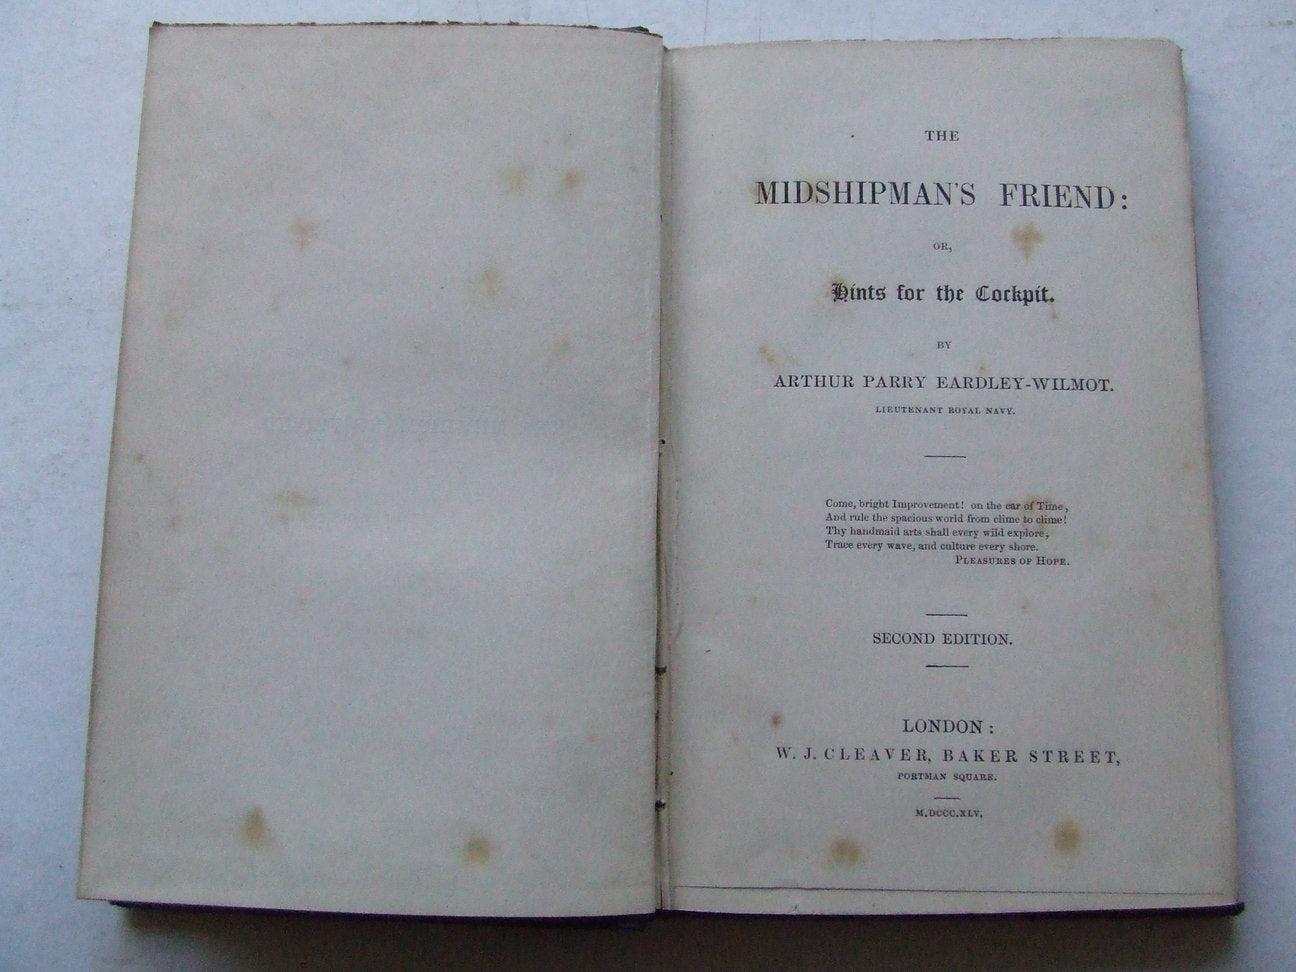 The Midshipman's Friend: or, hints for the cockpit